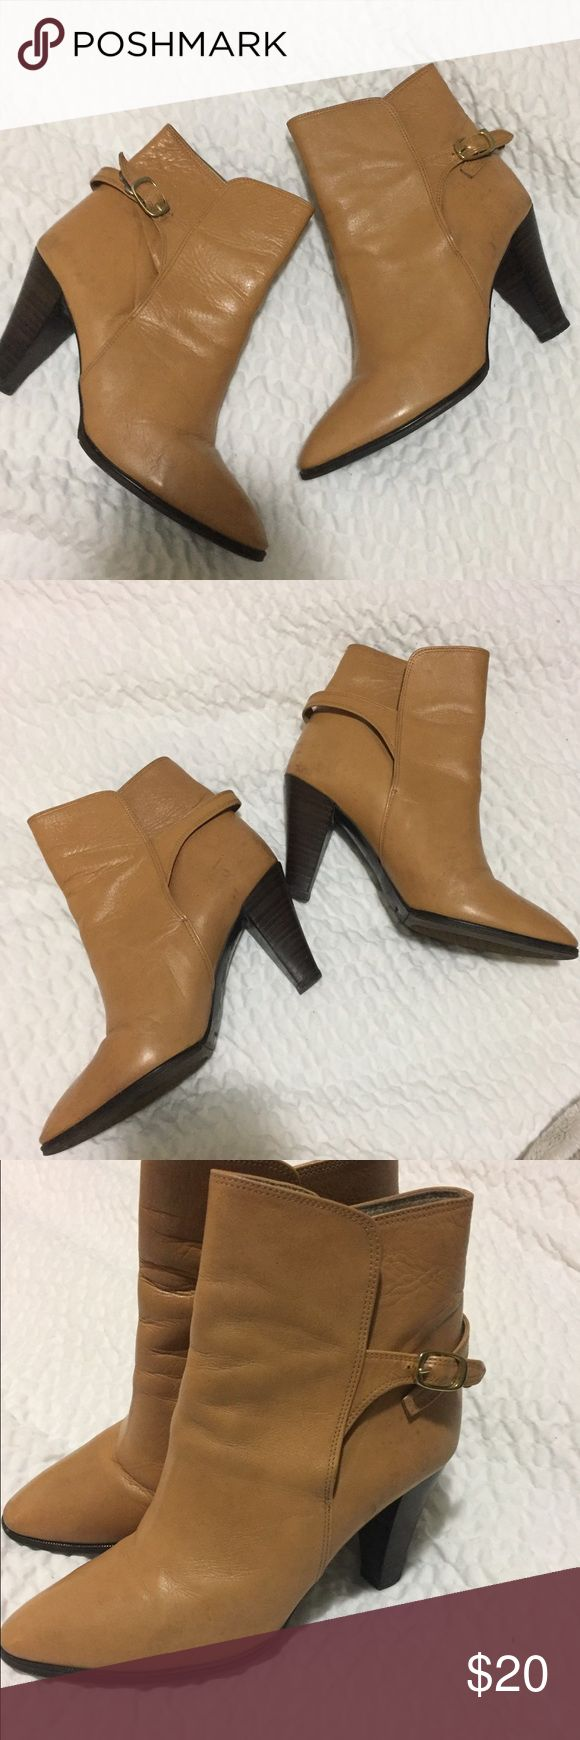 Tan genuine leather ankle boots Vintage tan leather ankle boots. The leather is soft and the bottoms are great. Size 6 Vintage Shoes Ankle Boots & Booties